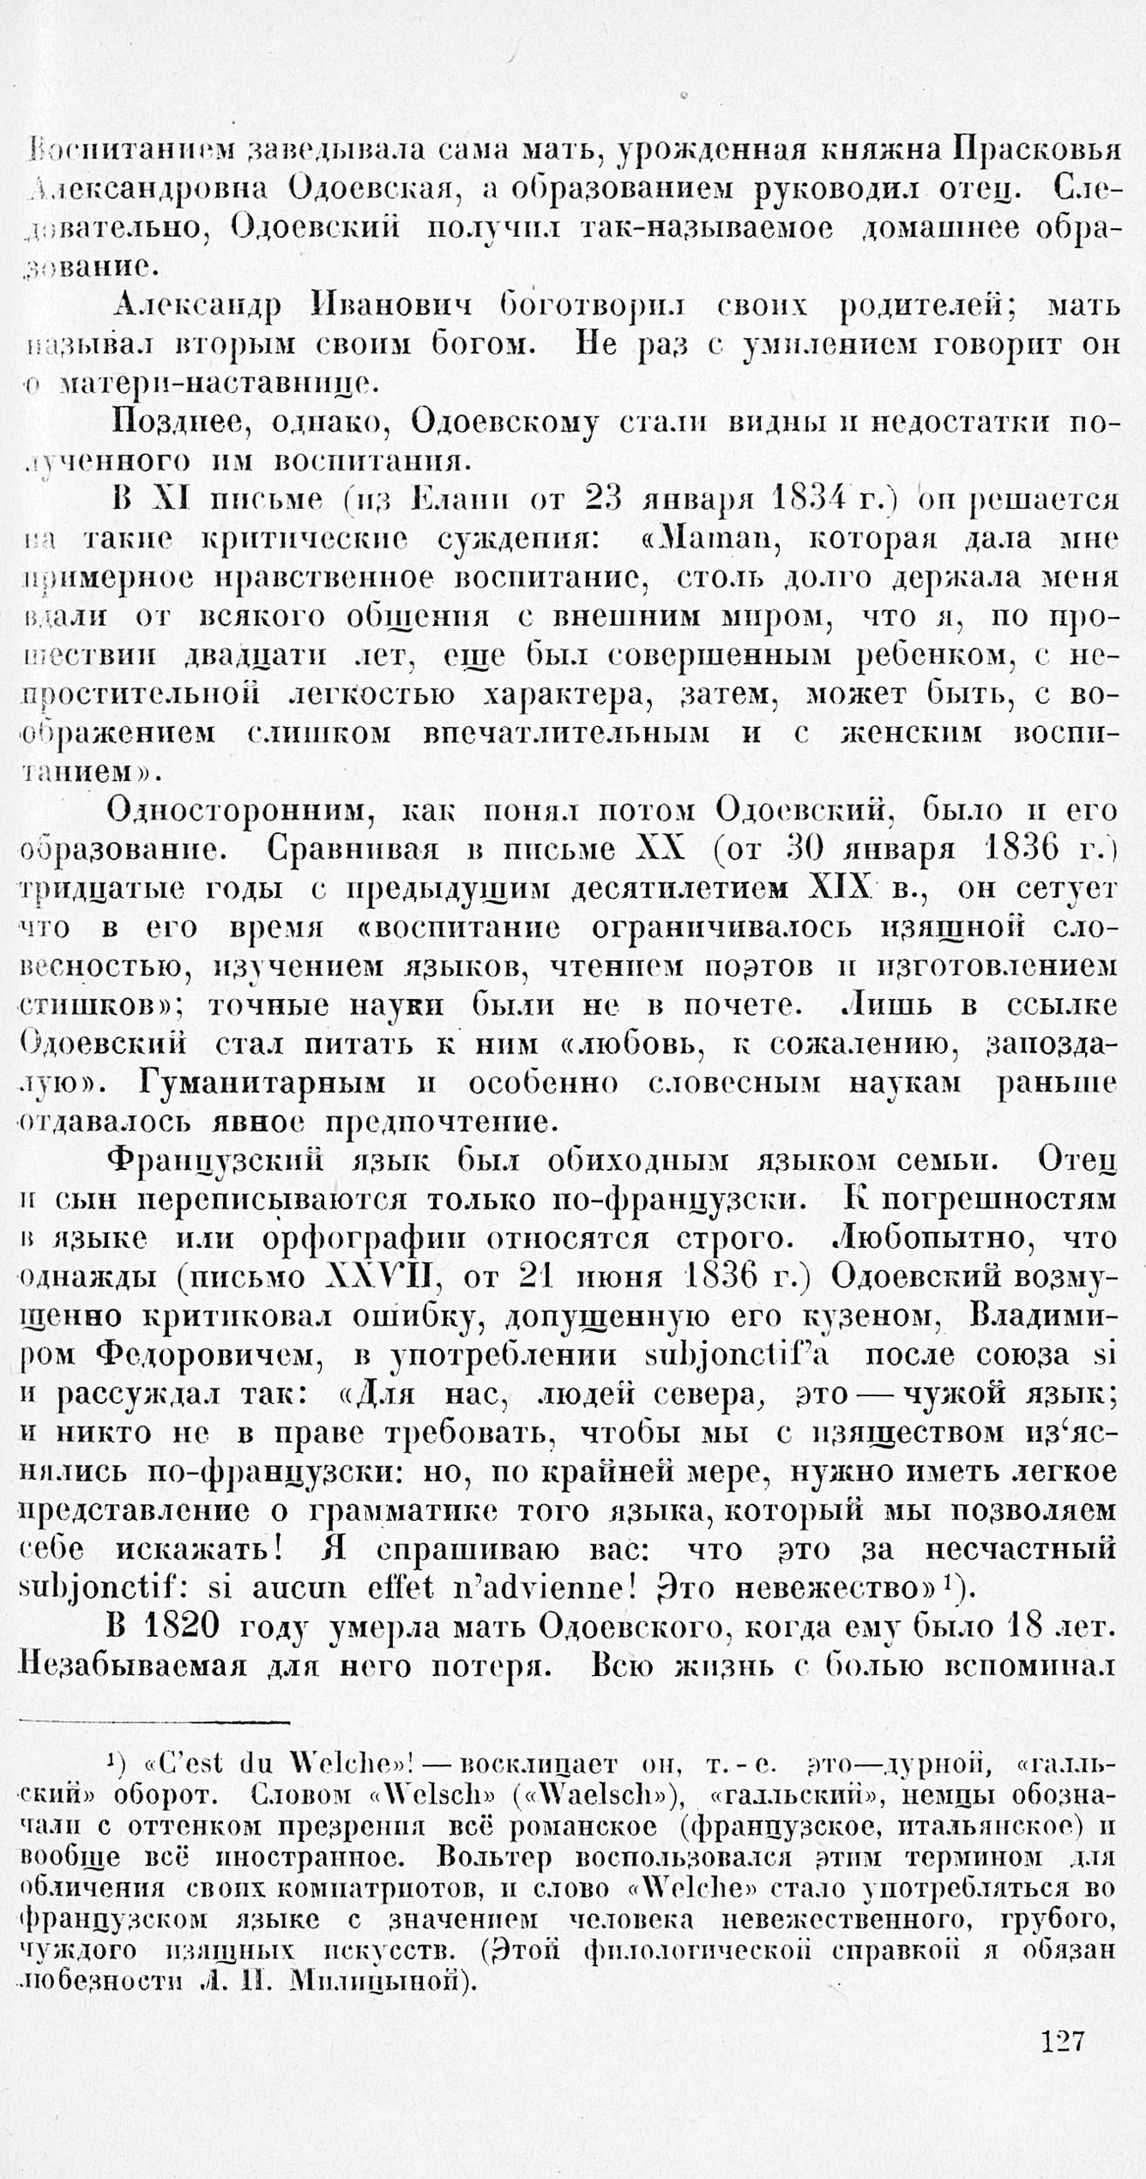 http://elib.shpl.ru/pages/650008/zooms/7